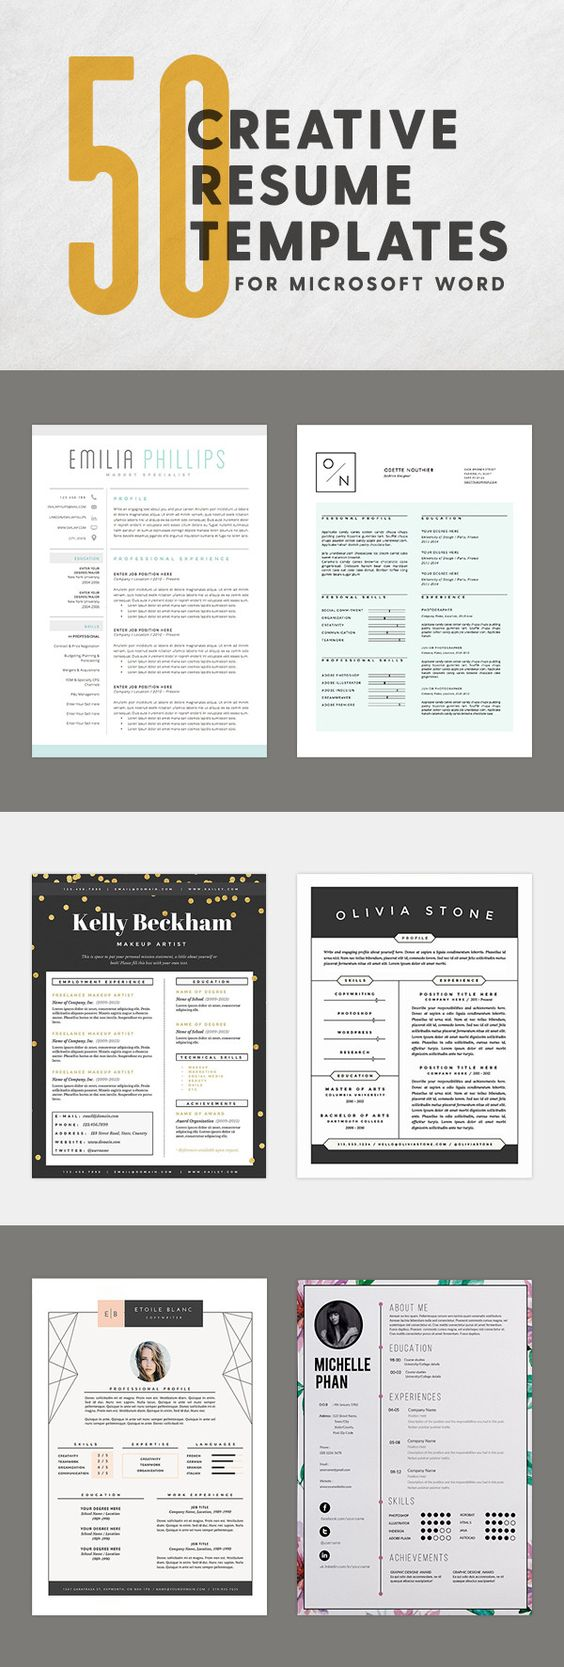 creative resume templates you won t believe are microsoft word 50 creative resume templates you won t believe are microsoft word attractive cv templates can make a huge difference when you re sending out resumes